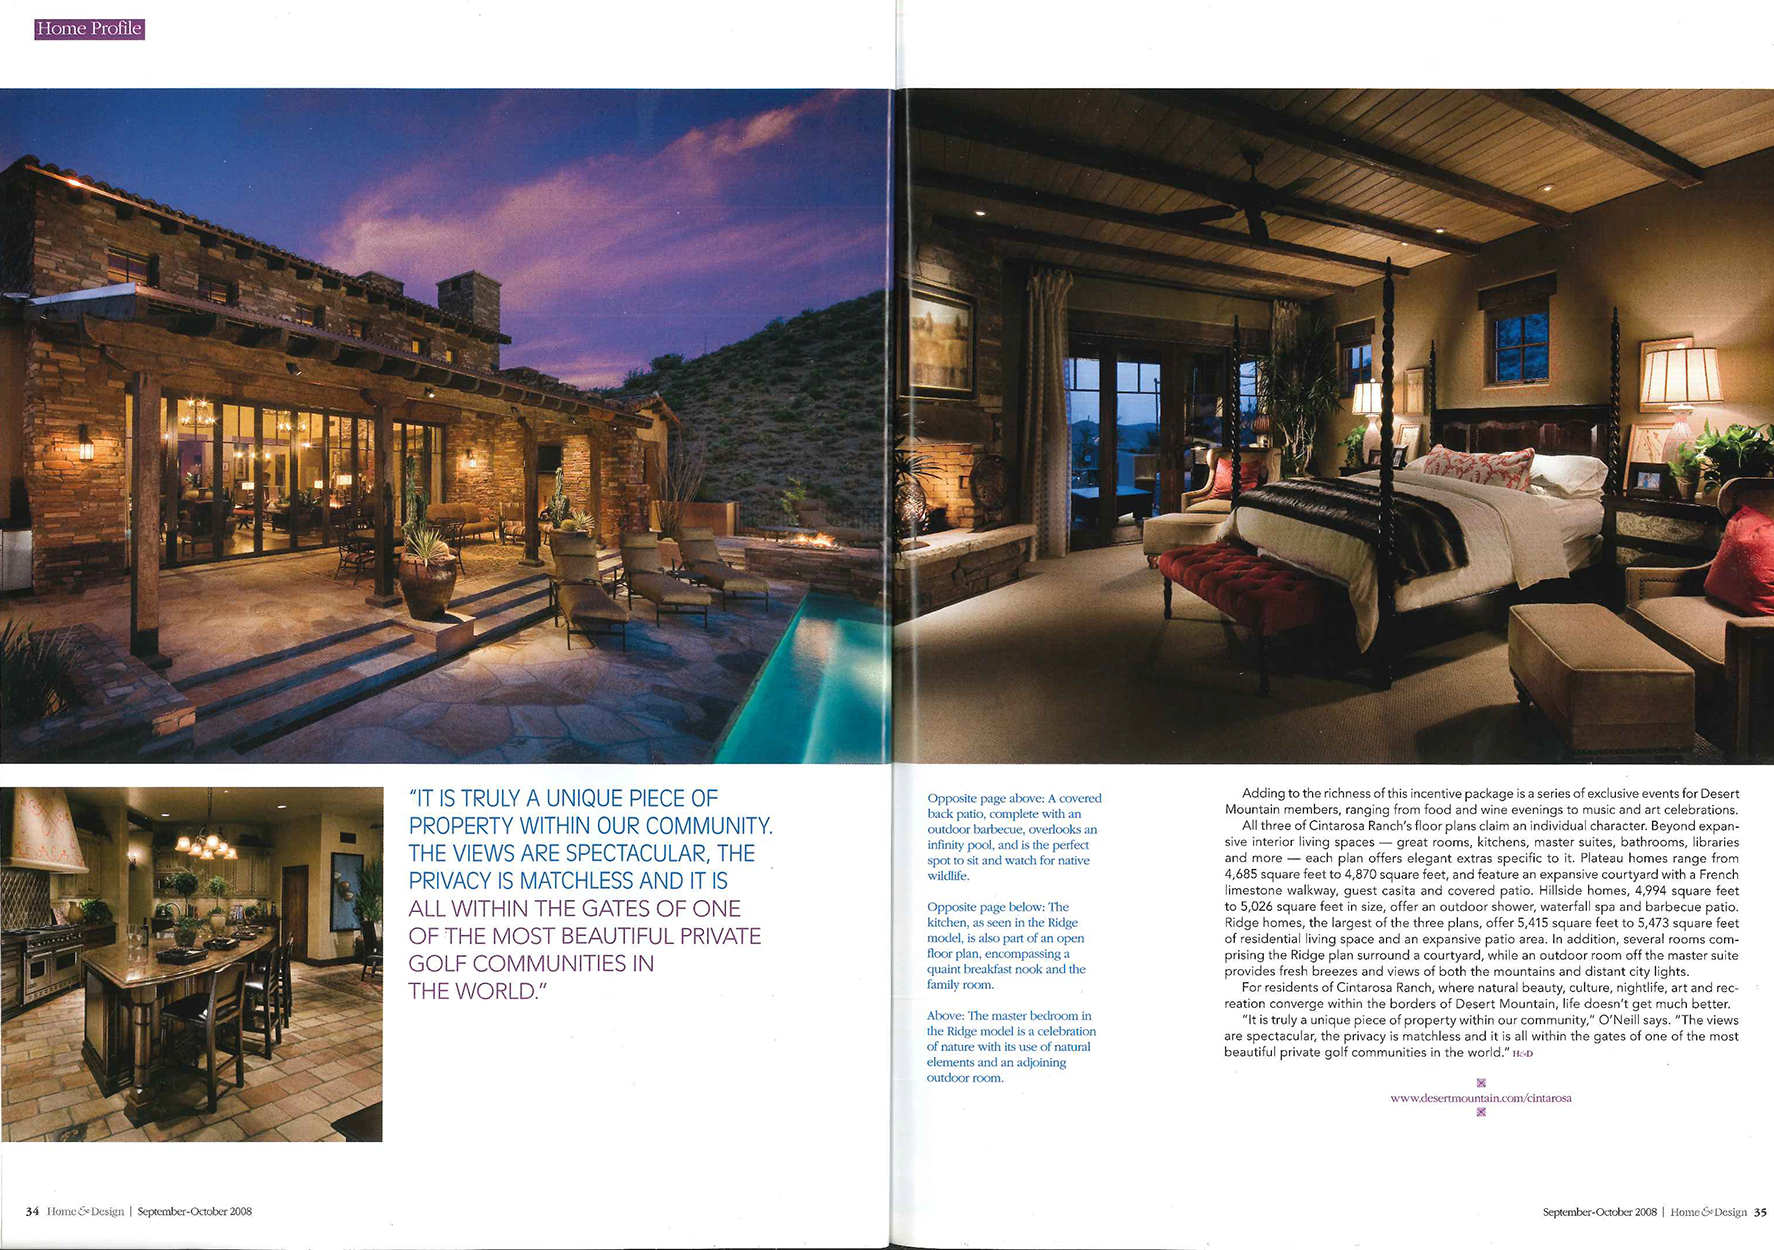 Arizona Home  & Design, Desert mountain article